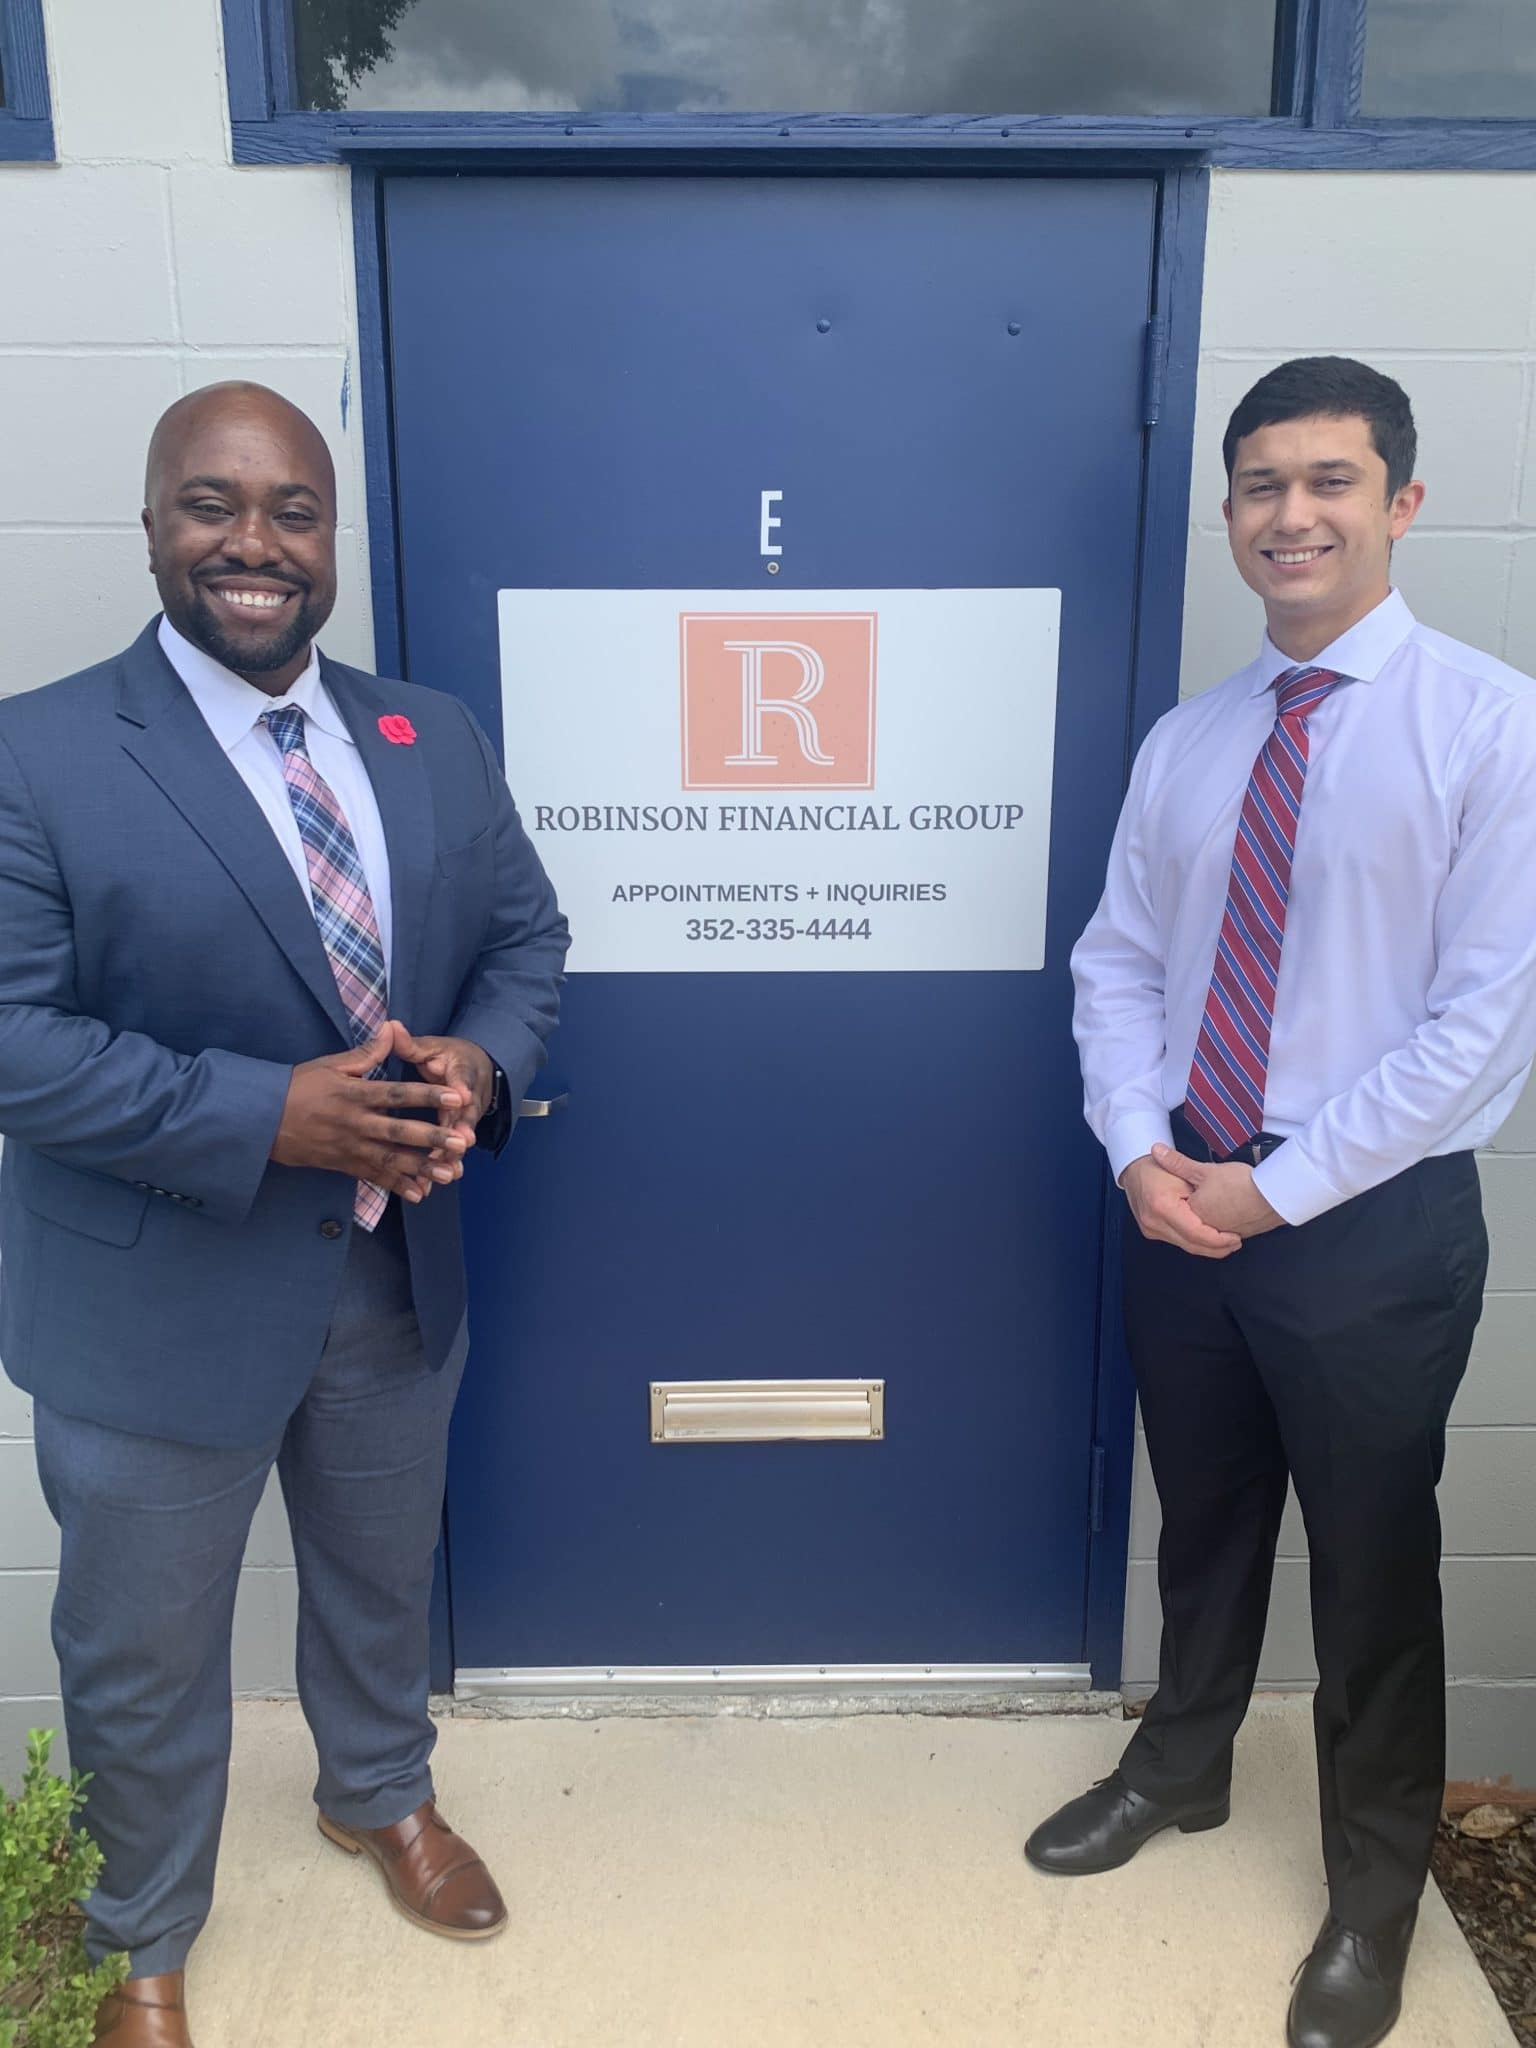 Nicholas Artires with Marcus Robinson, President of Robinson Financial Group, where Nicholas is completing his internship.